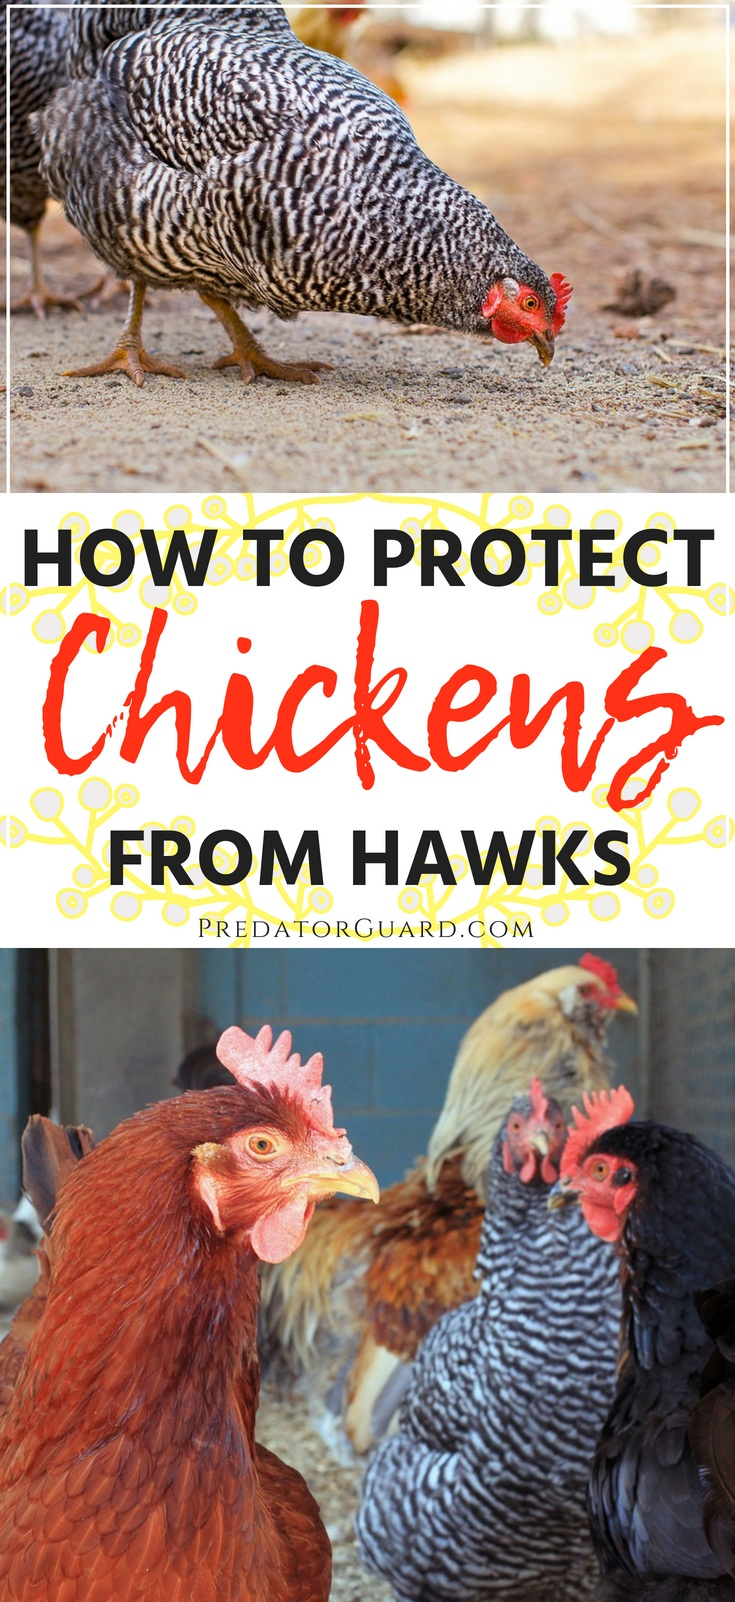 How-To-Protect-Chickens-From-Hawks-Predator-Guard